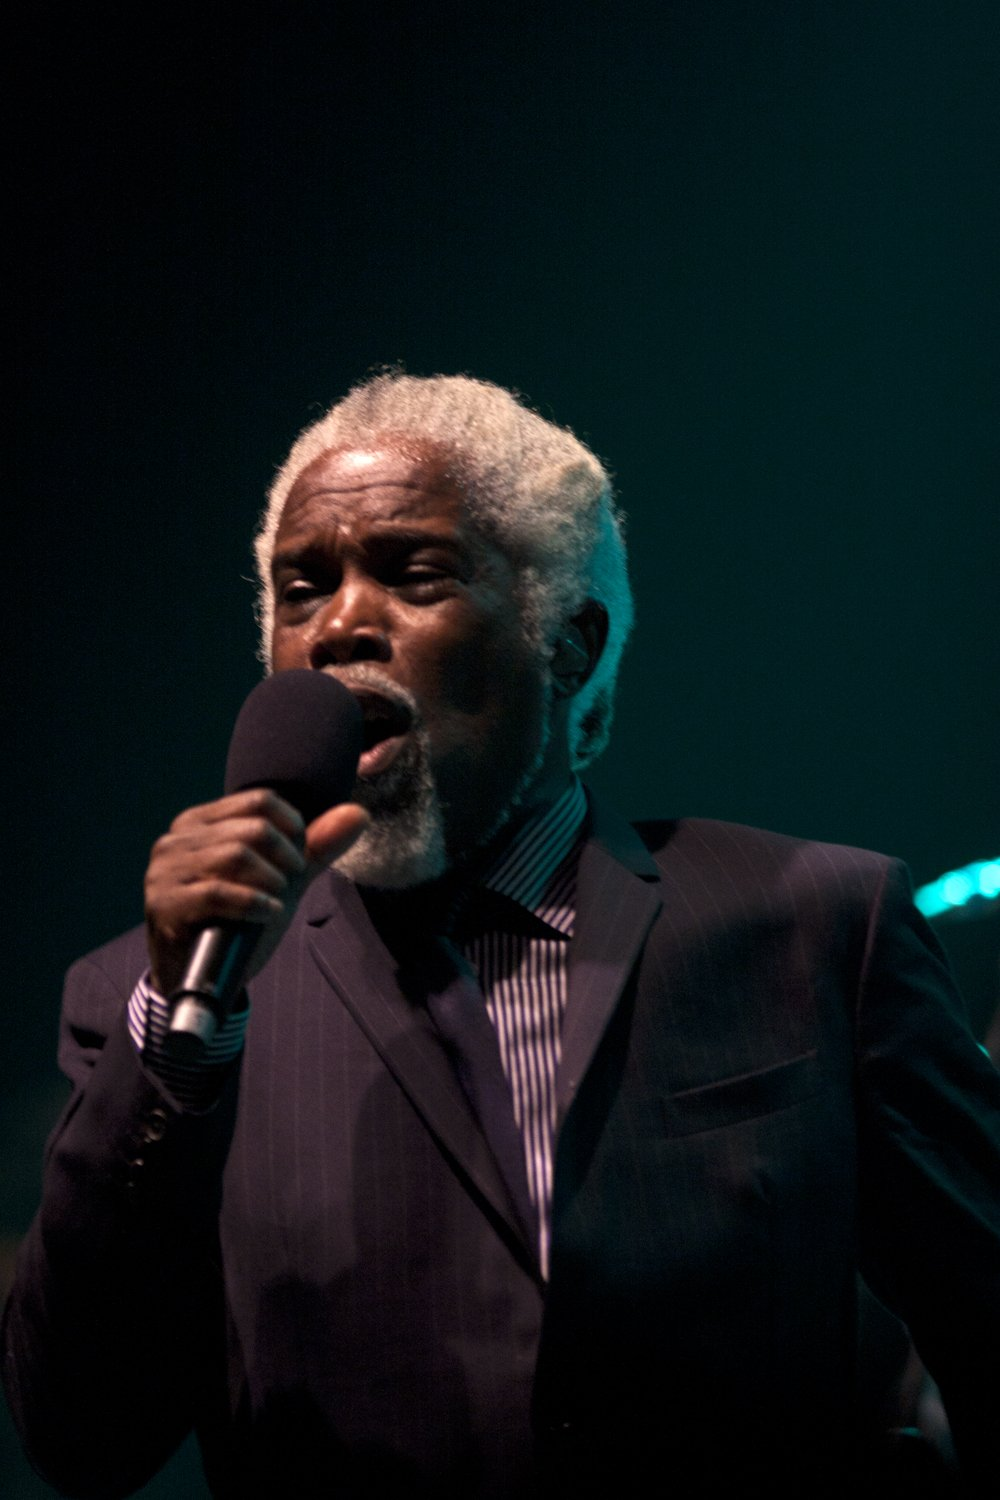 Billy Ocean performing  at the State Theatre in Sydney, Australia, on January 25, 2012.   Photo: Wikimedia Commons.